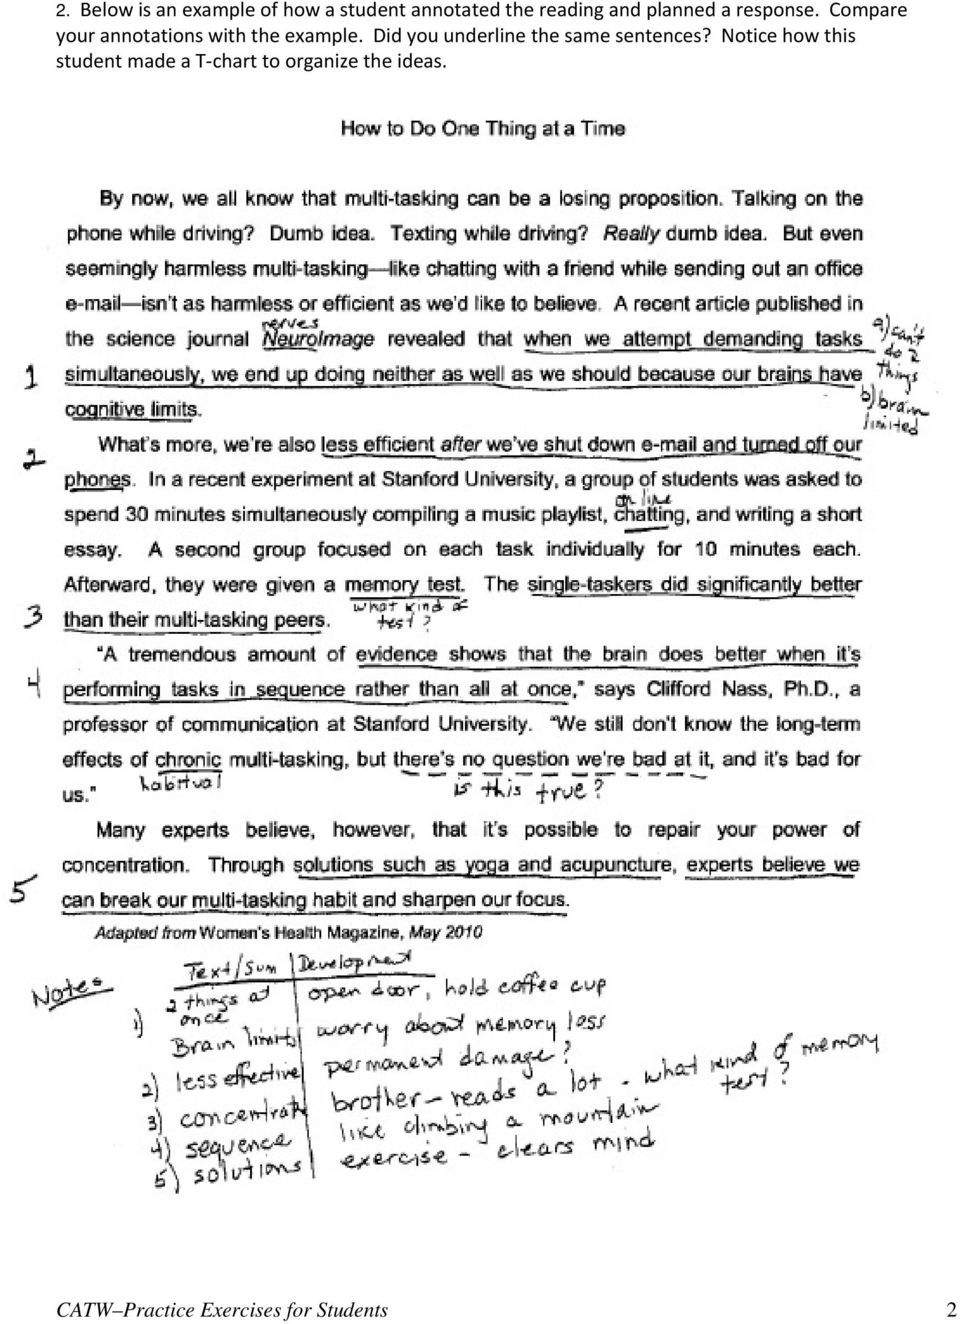 013 Research Paper Topics Ideas Page 3 Shocking Topic For College Students Computer Science Nursing Full